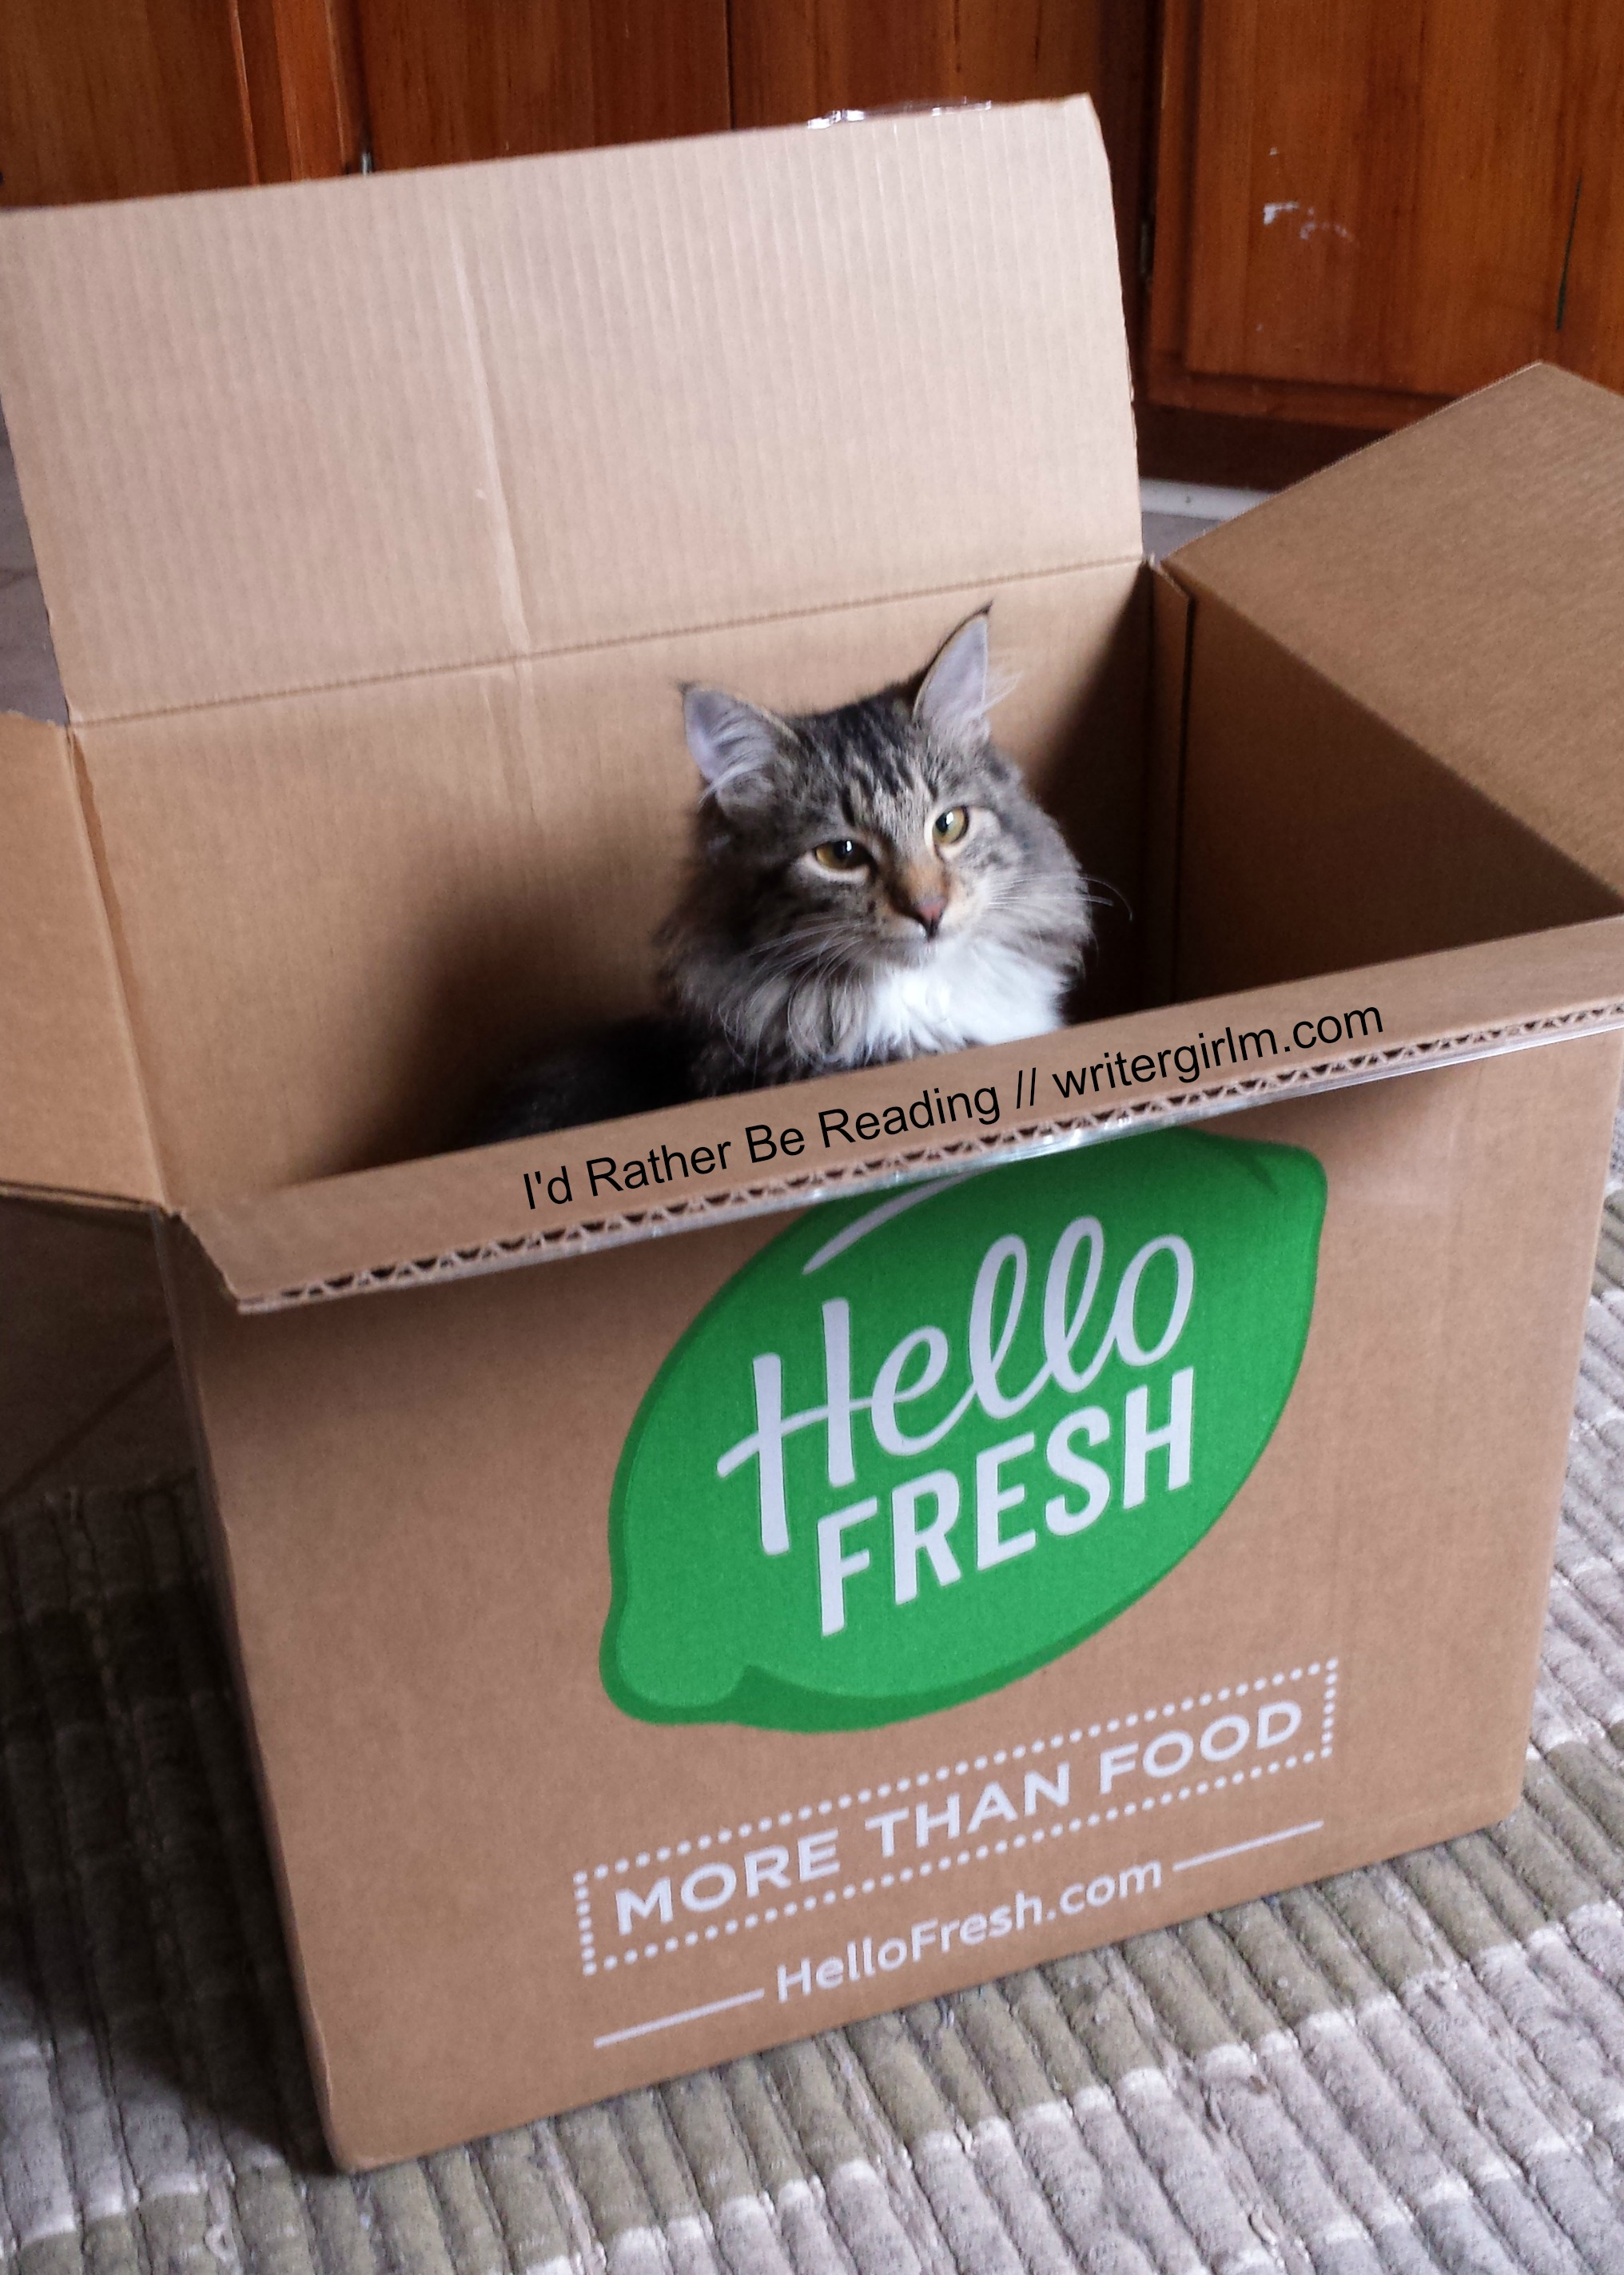 Even Ezio was excited to get a taste of my Hello Fresh order!